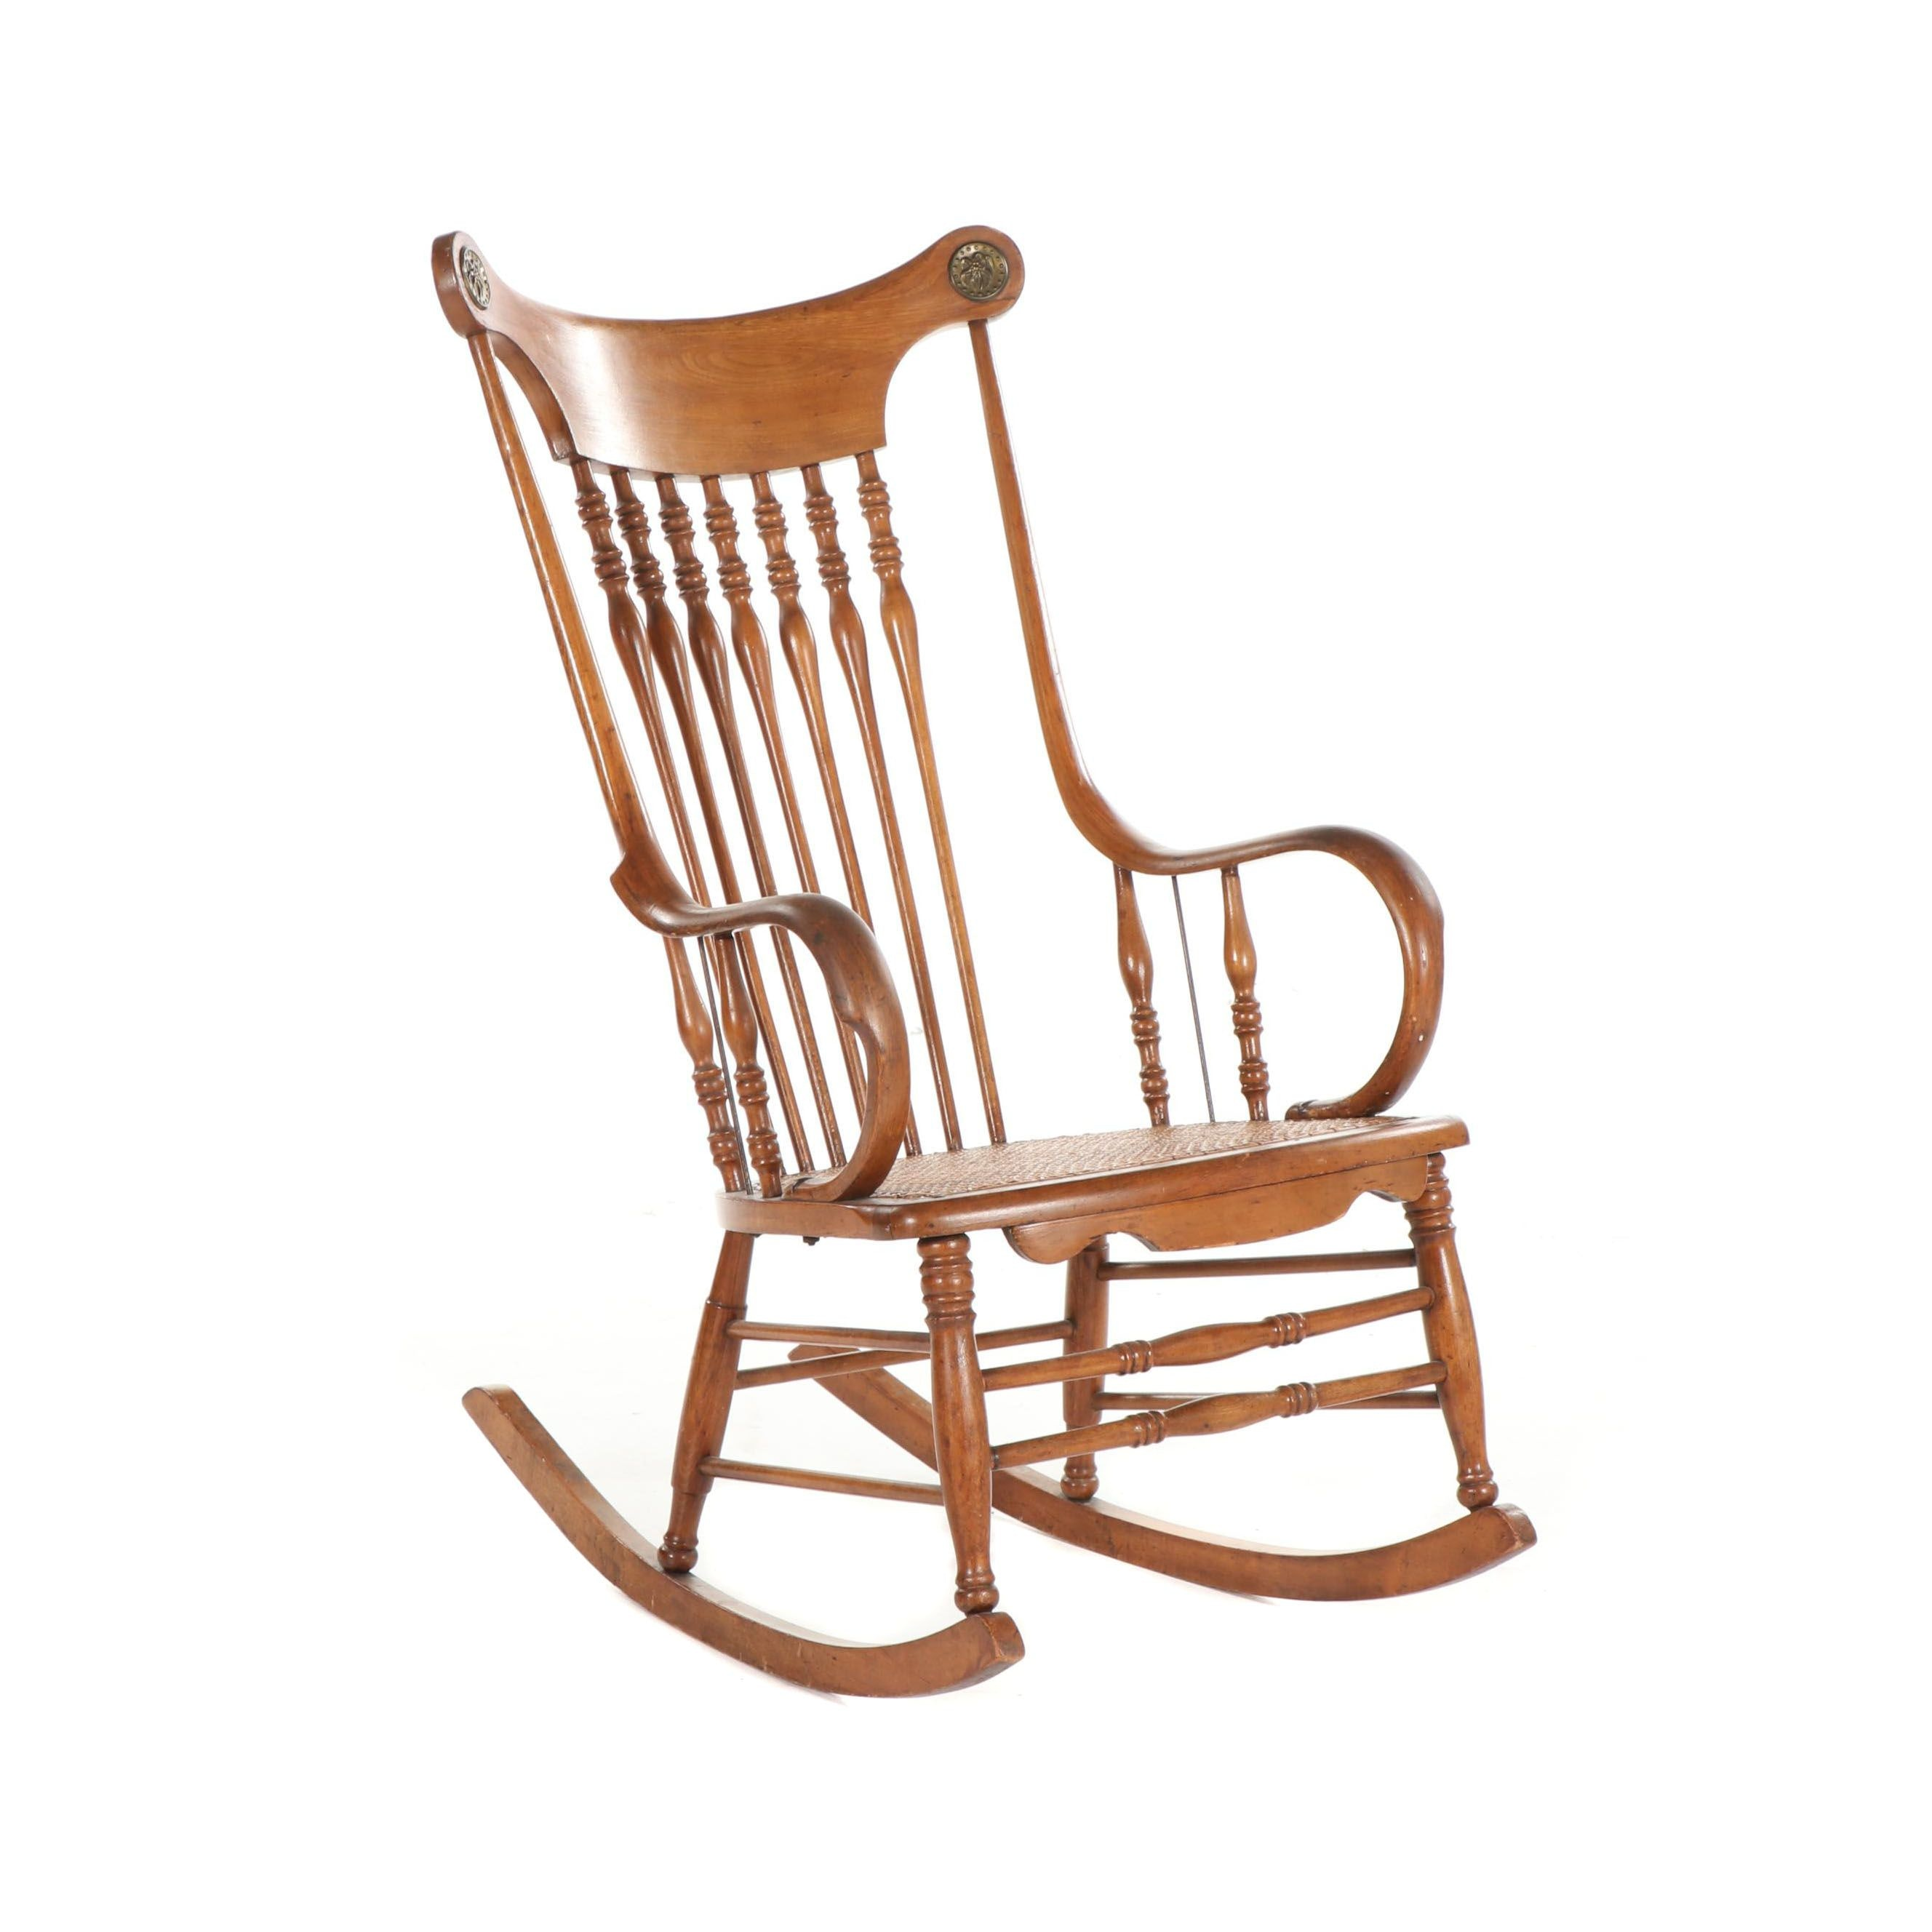 Walnut Frame Rocking Chair with Caned Seat and Brass Embellishments, Late 20th C